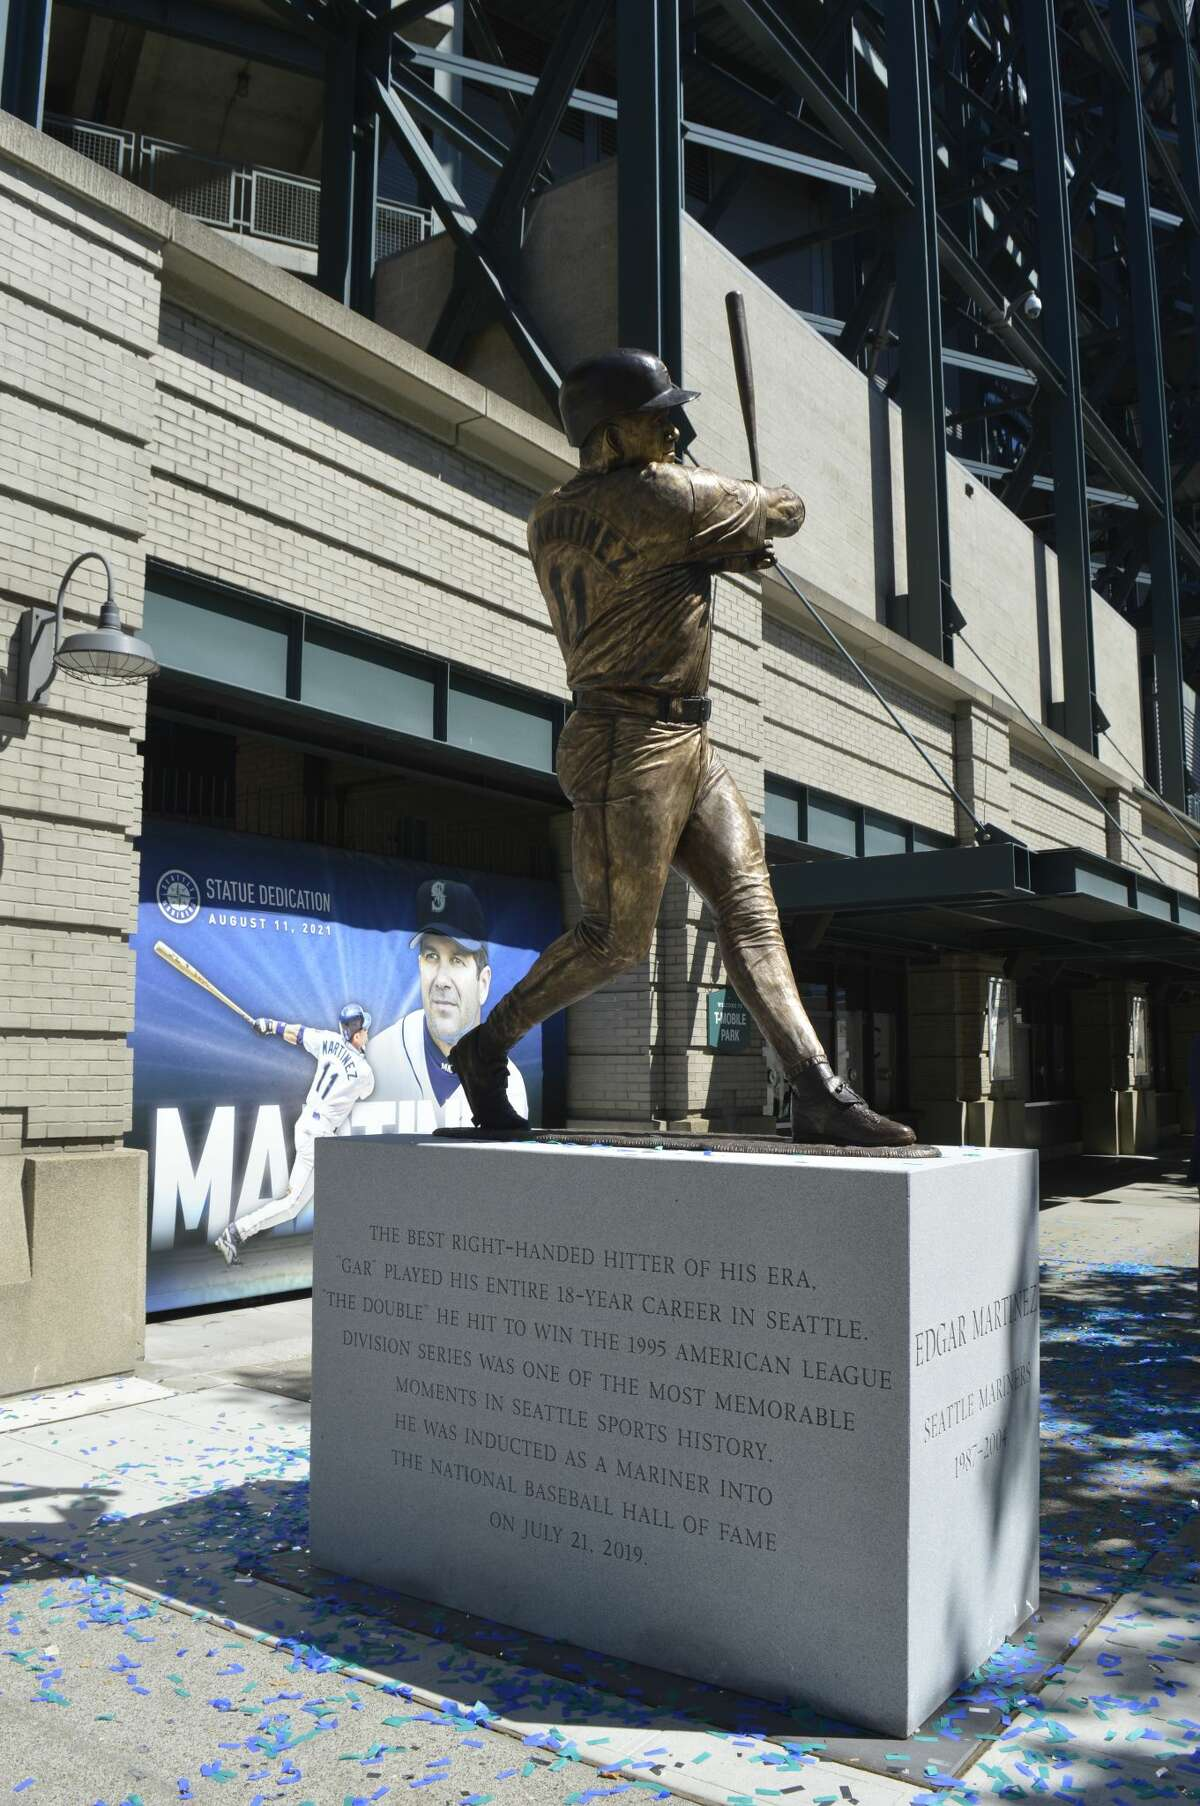 The new Edgar Martinez statue lives only 100 feet away from the Ken Griffey Jr. statue by the same artist.